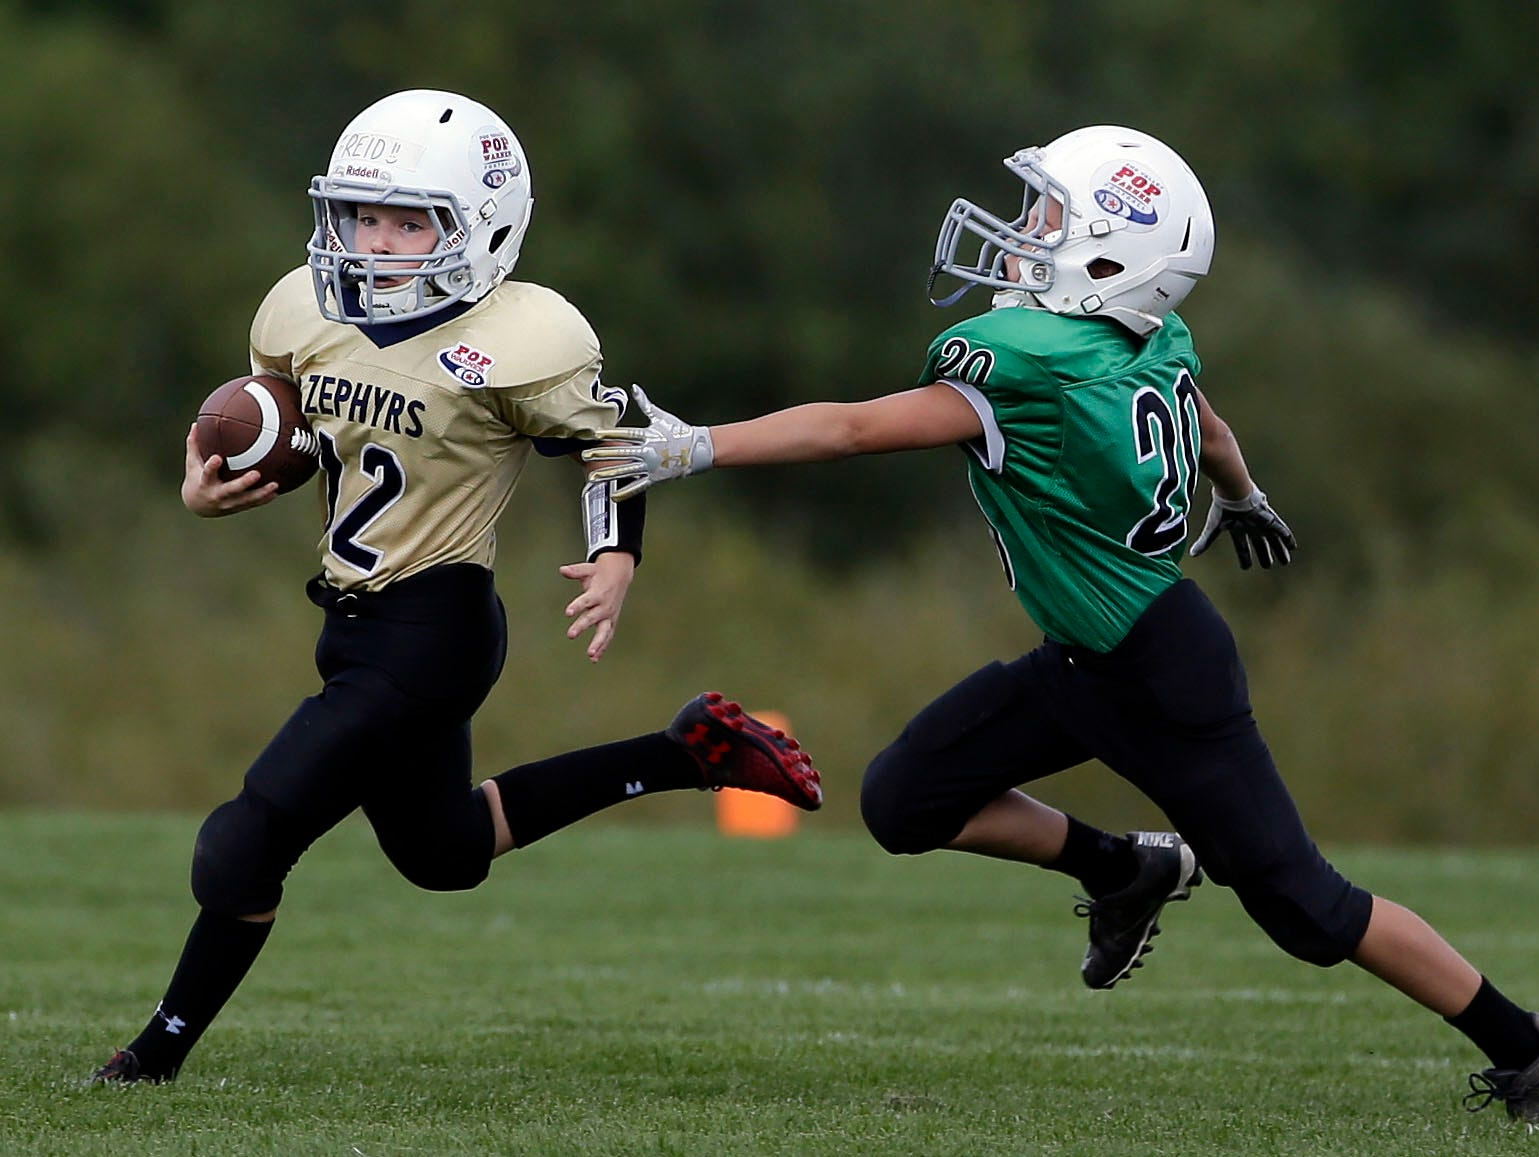 Travis Lindenberg of the Zephyrs gets away from Brogan Dodge of the Sharks as Fox Valley Pop Warner Football opens the season Saturday, September 8, 2018, at Plamann Park in Grand Chute, Wis.Ron Page/USA TODAY NETWORK-Wisconsin